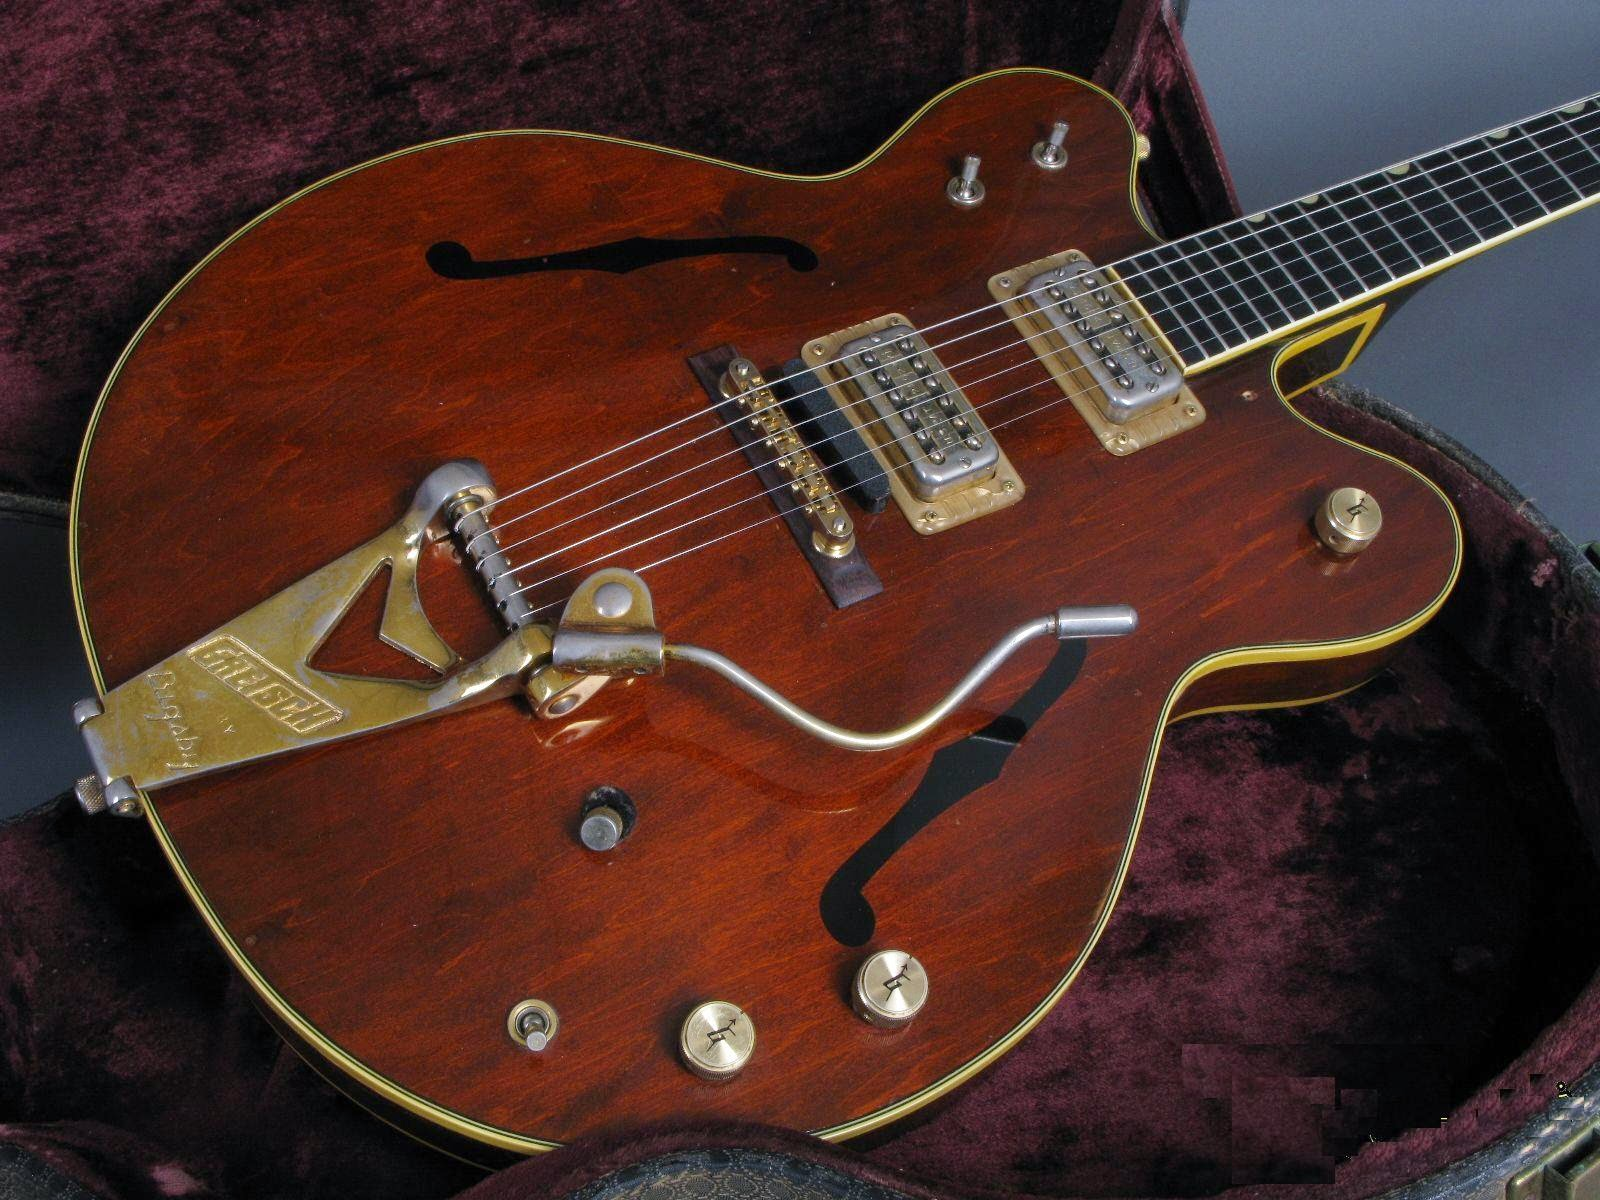 In 1971 The Mute Was Gone Fretboard Once Again Made Of Ebony Guitar Came With An Adjustamatic Bridge And Model Designation Changed To